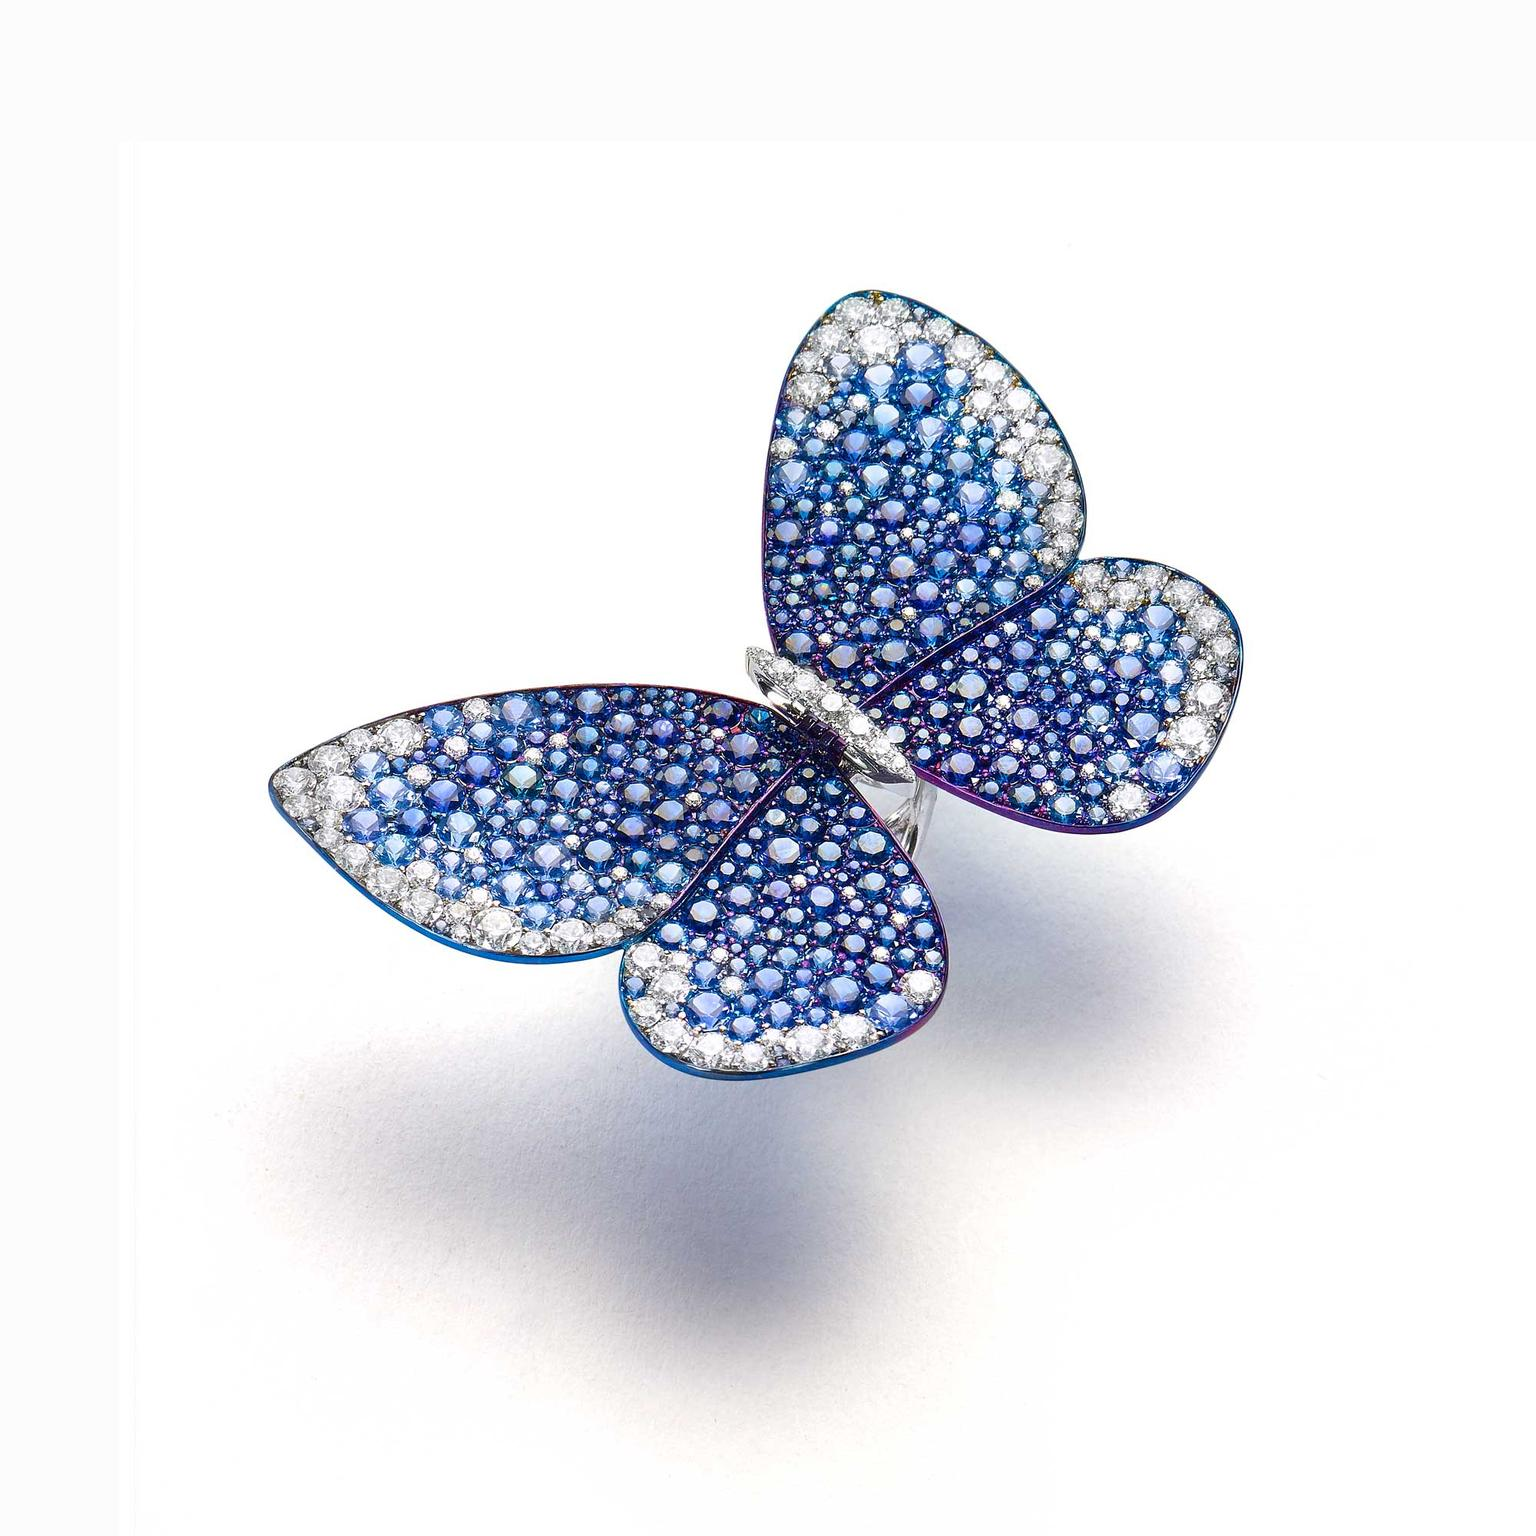 Glenn Spiro titanium and white gold with sapphires butterfly ring